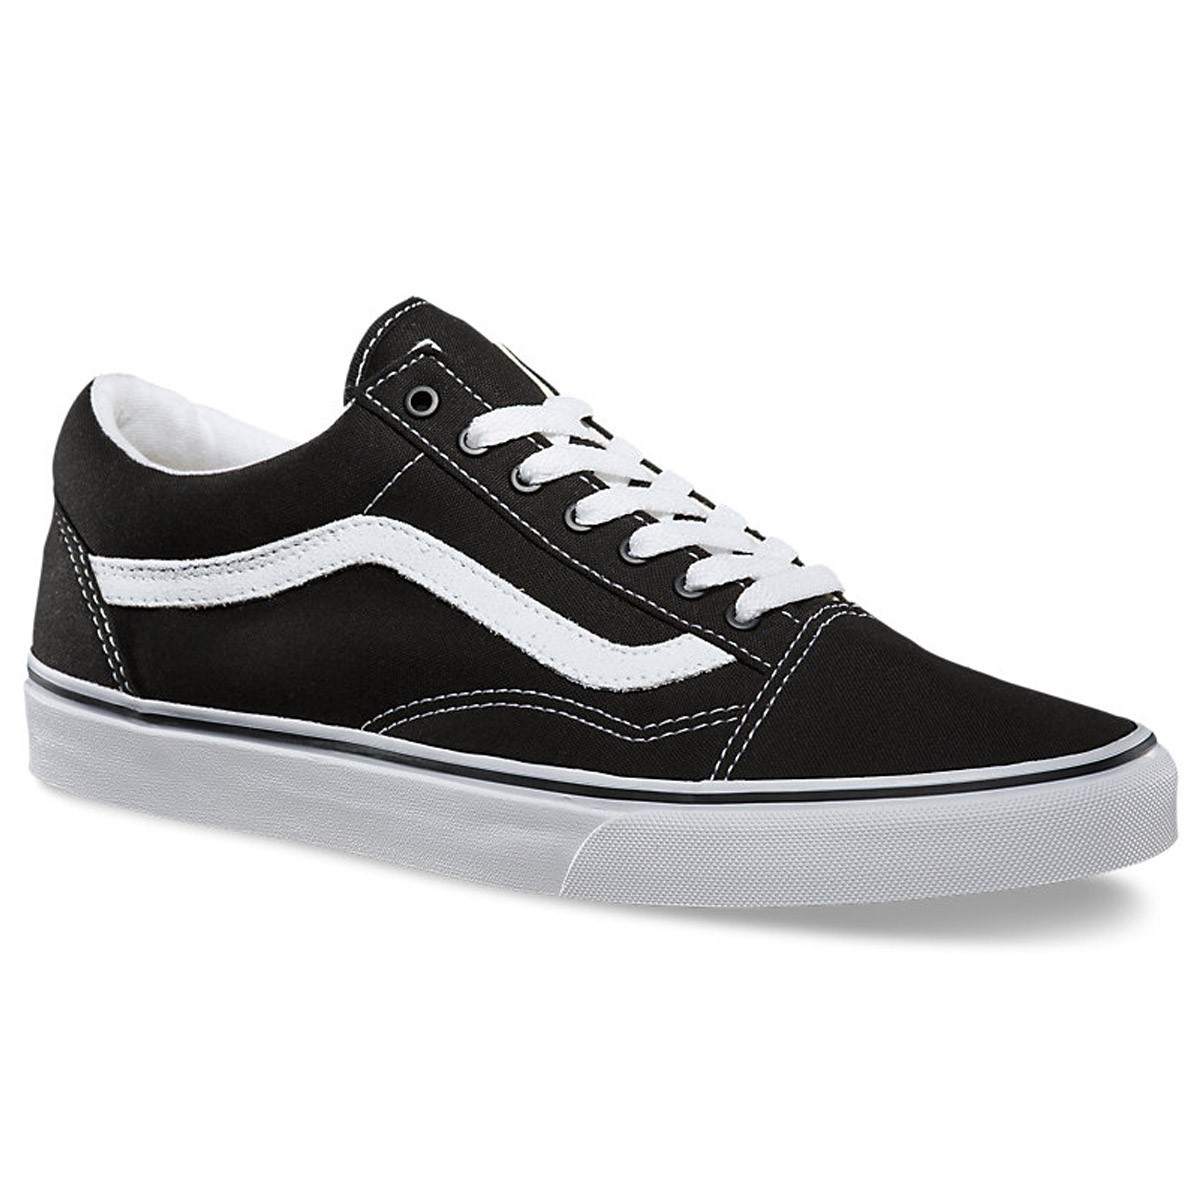 f95ef9871cce Vans Old Skool Shoes - Black White - 8.0